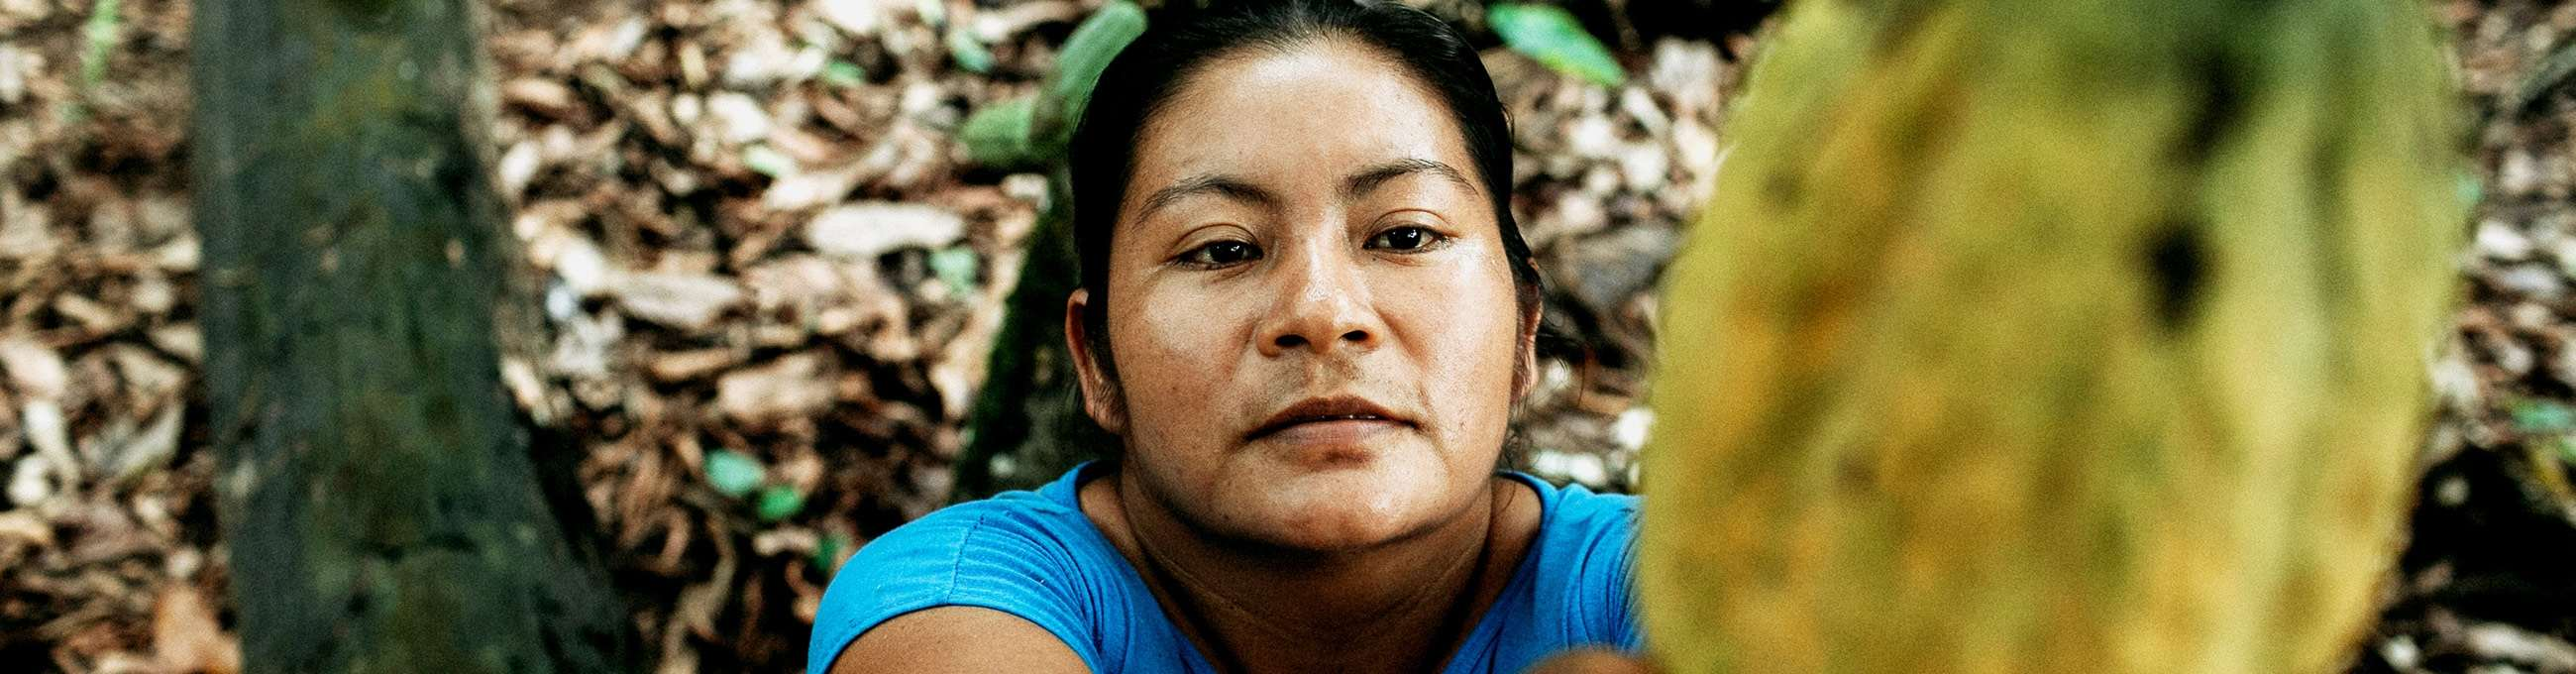 Ecuador, Chankuap, Fair Trade, Gender Equality